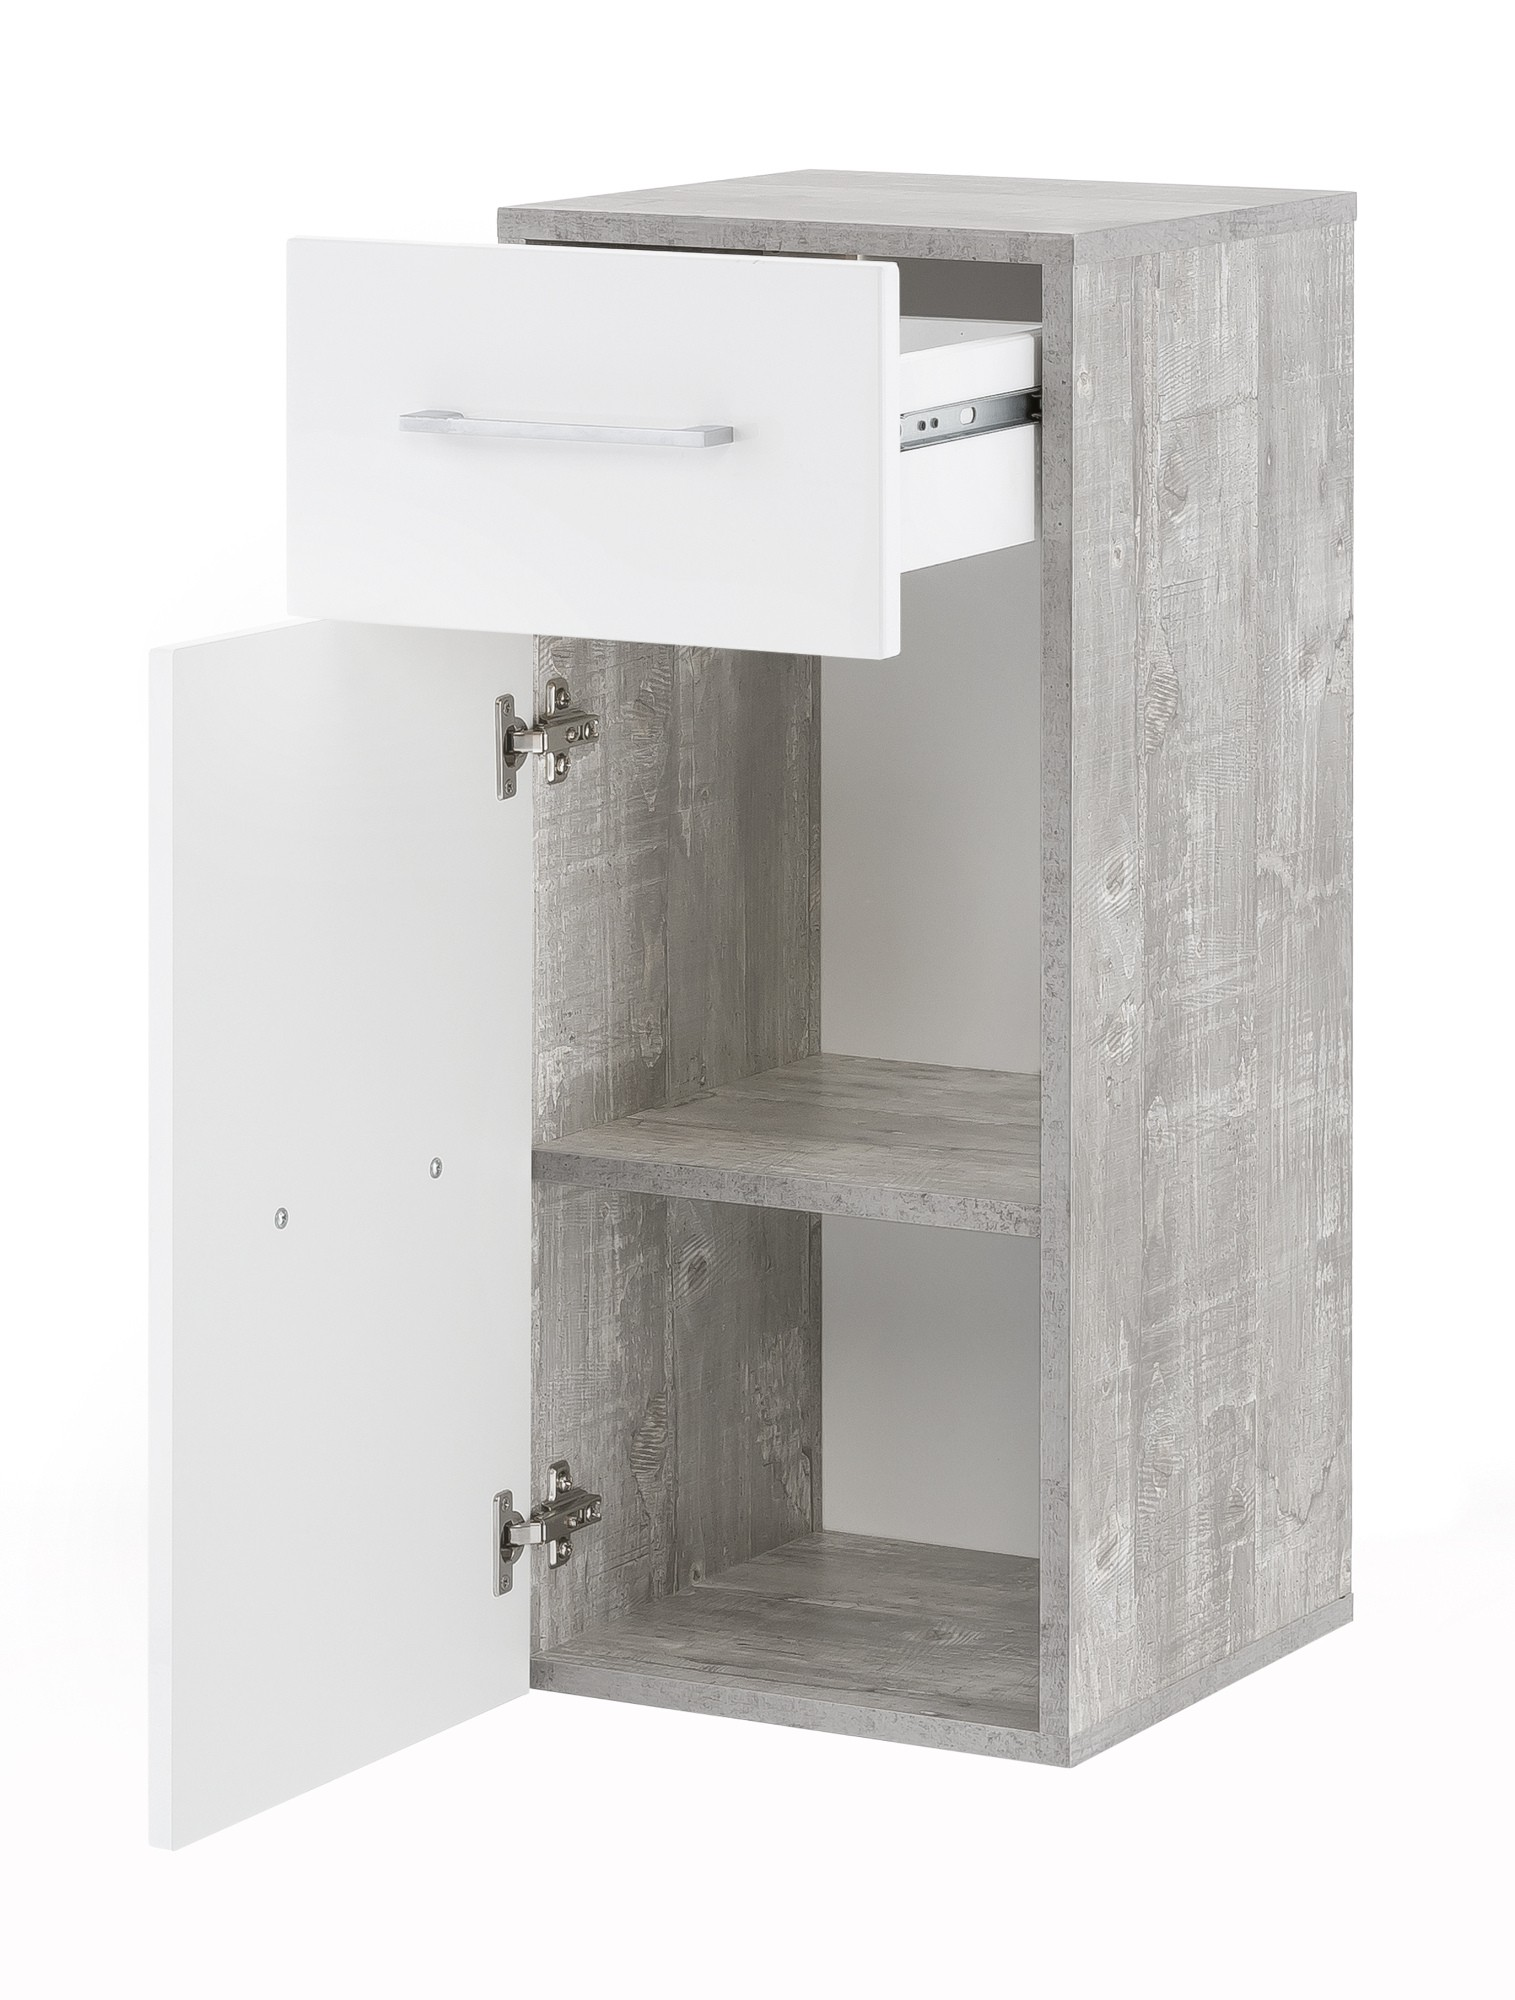 badezimmer badschrank ulm badm bel unterschrank t r schublade 30cm weiss beton ebay. Black Bedroom Furniture Sets. Home Design Ideas